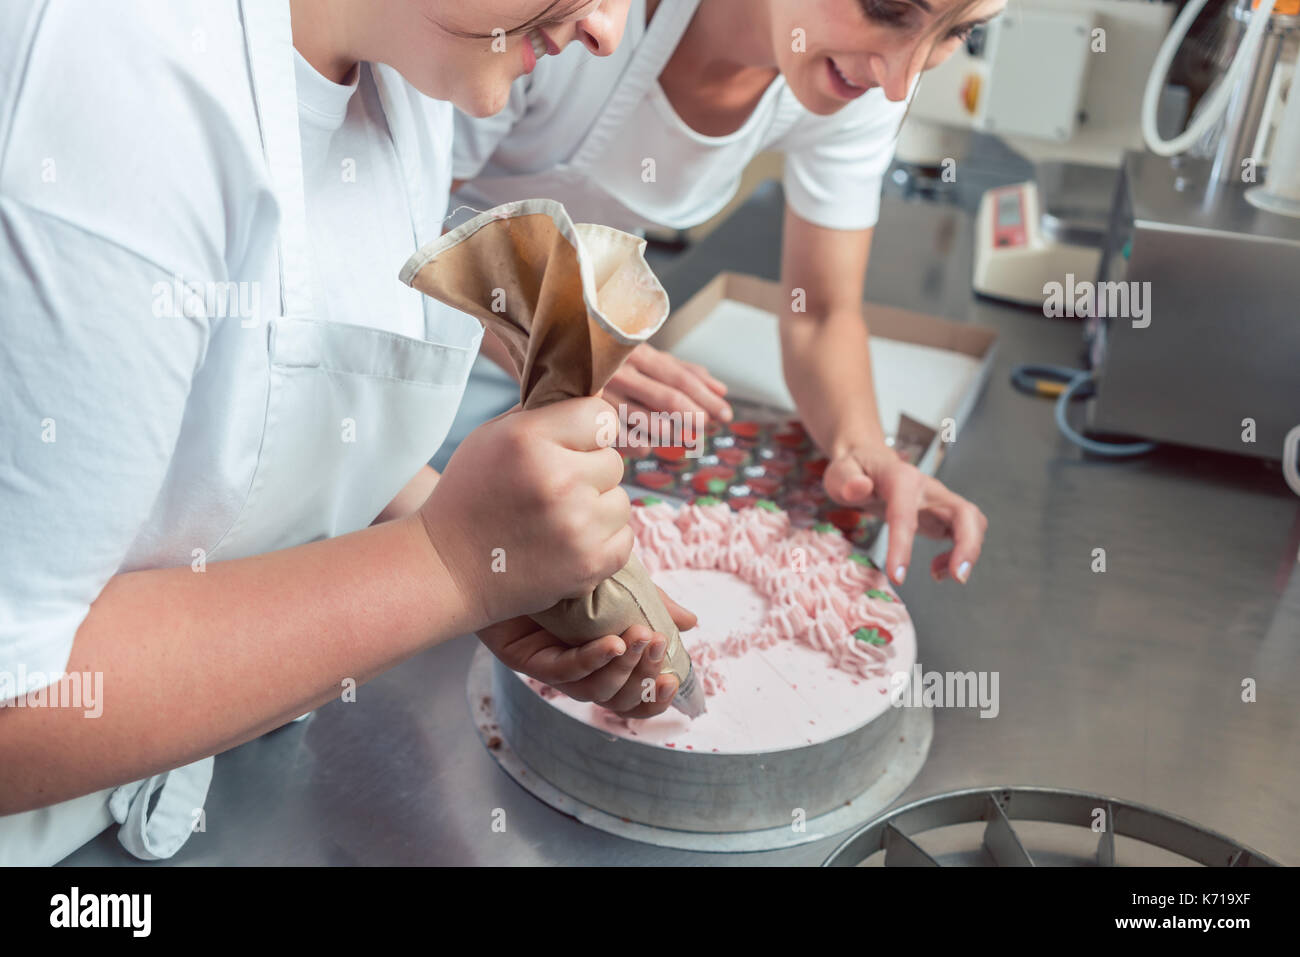 Confectioner women putting cream on cake - Stock Image